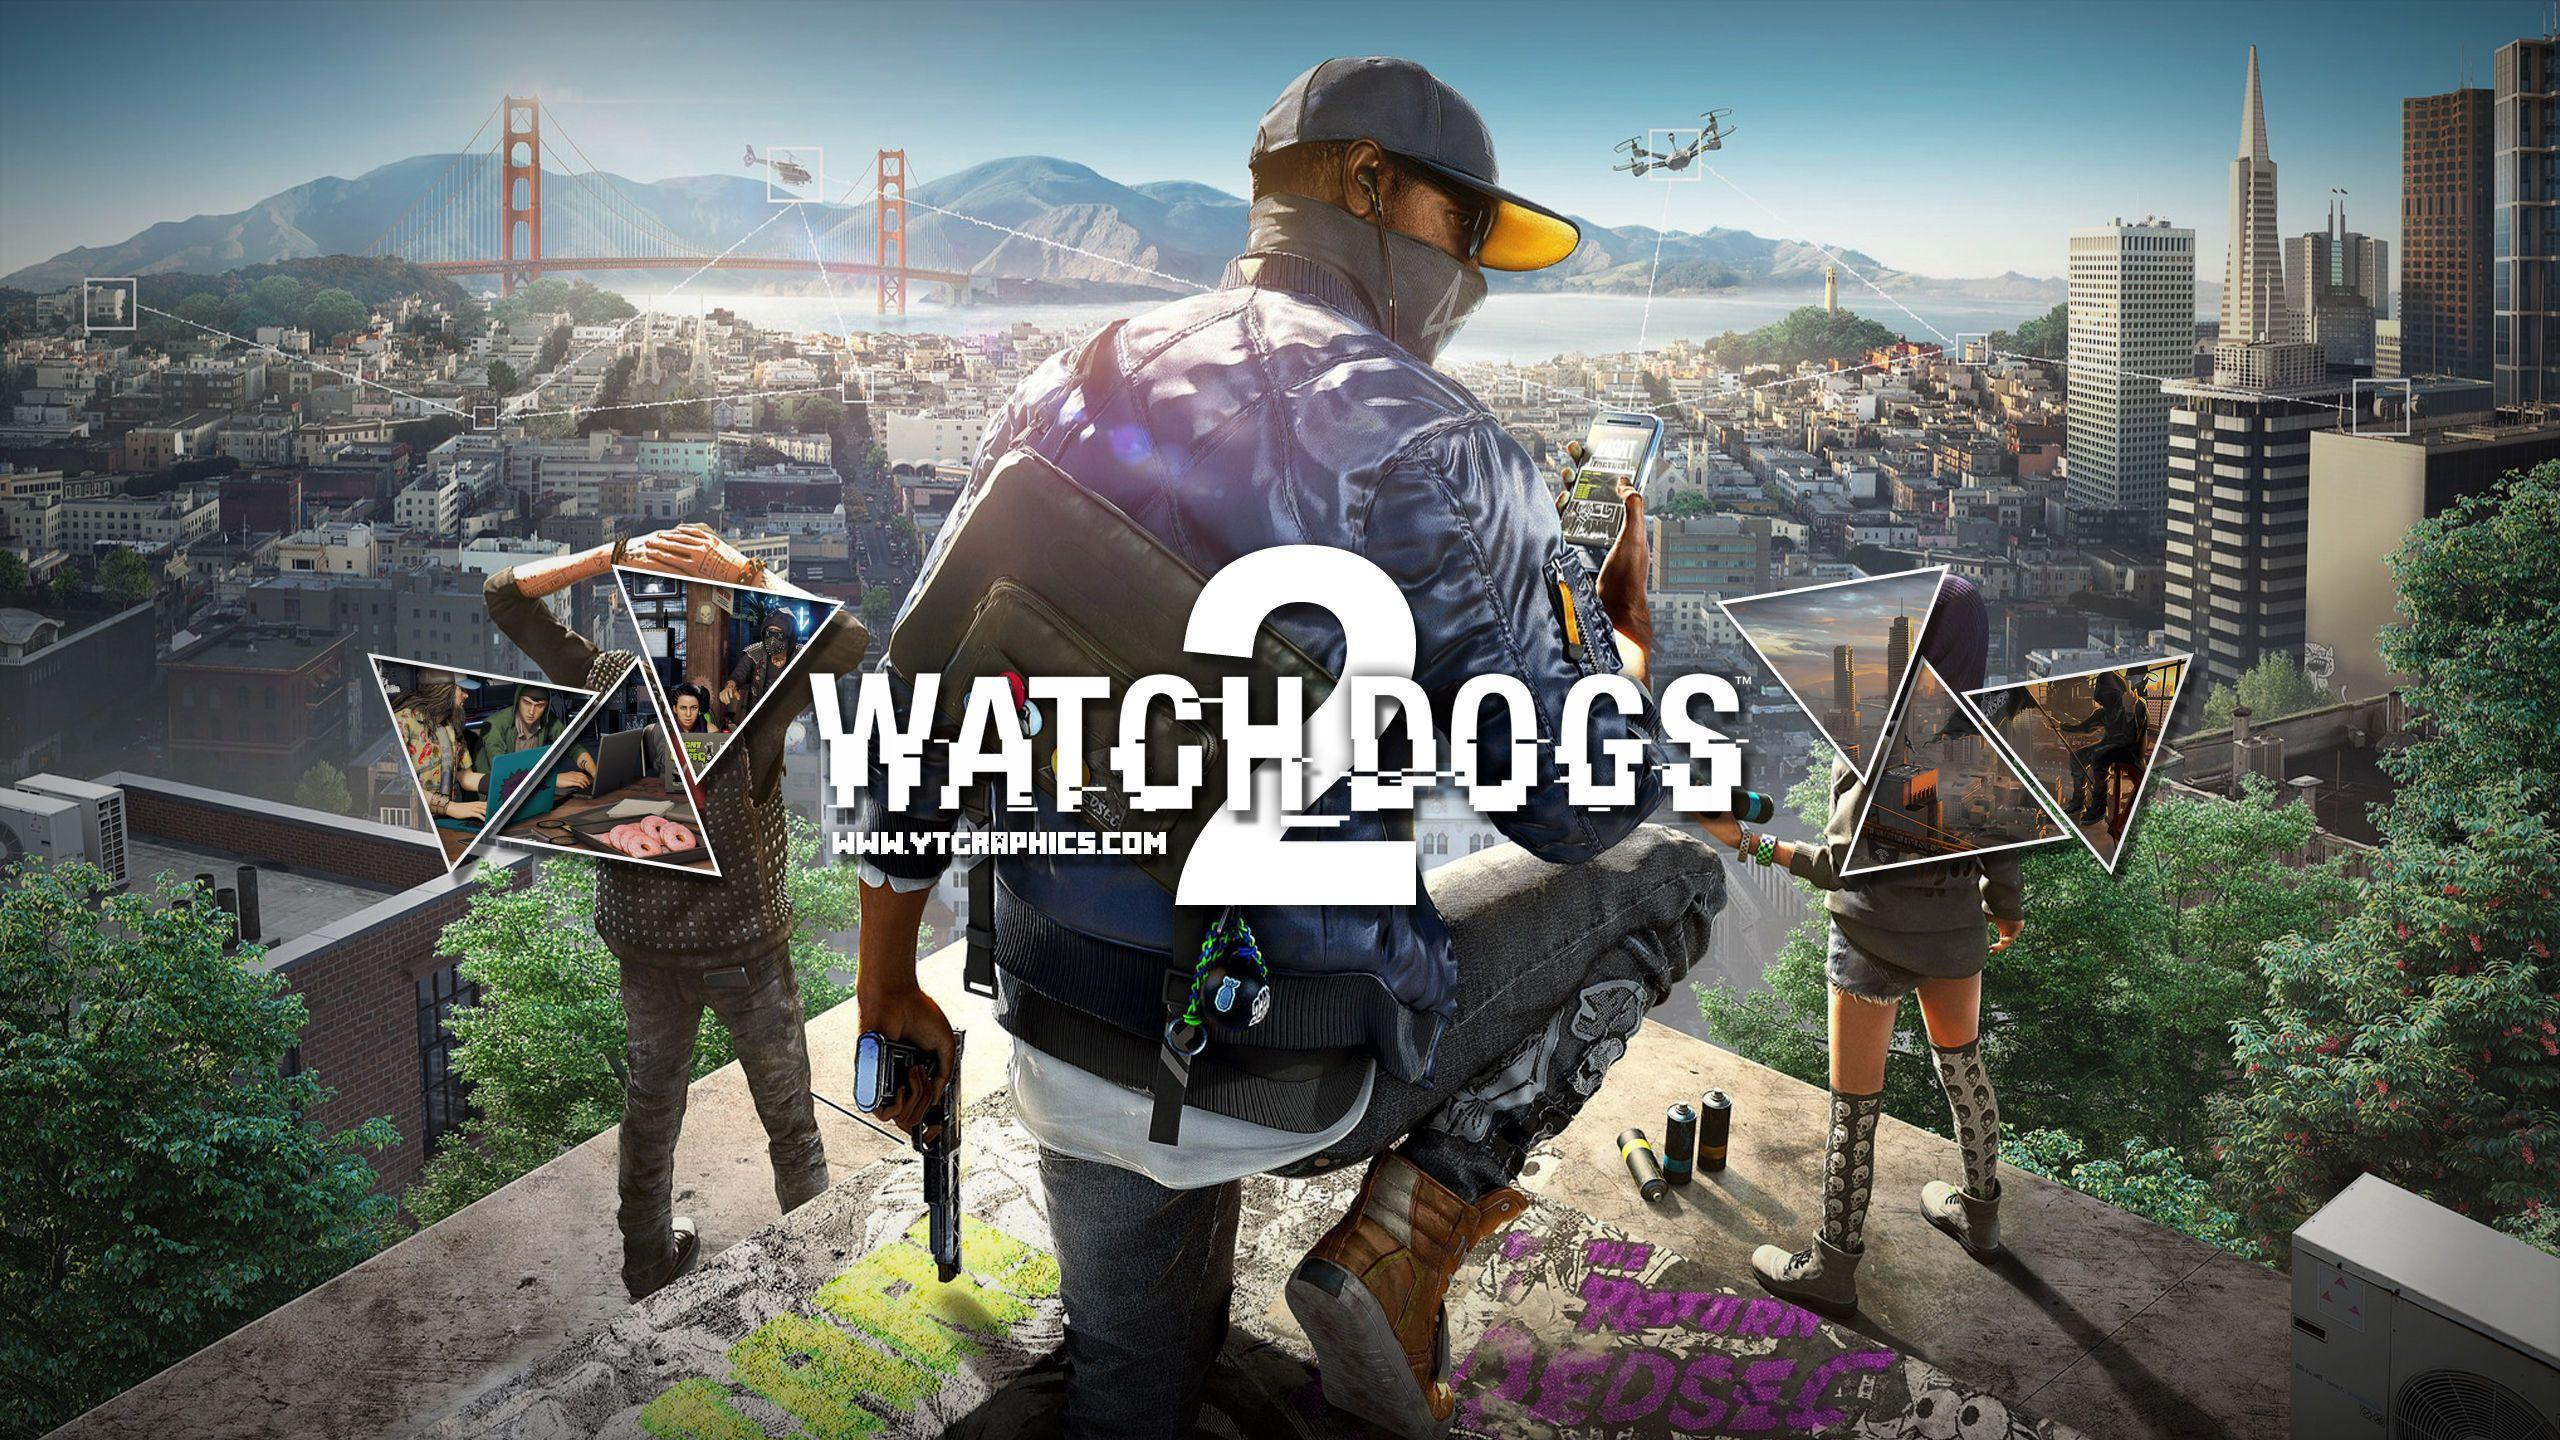 Watch Dogs 2 Video Game Wallpapers Wallpaper Cave